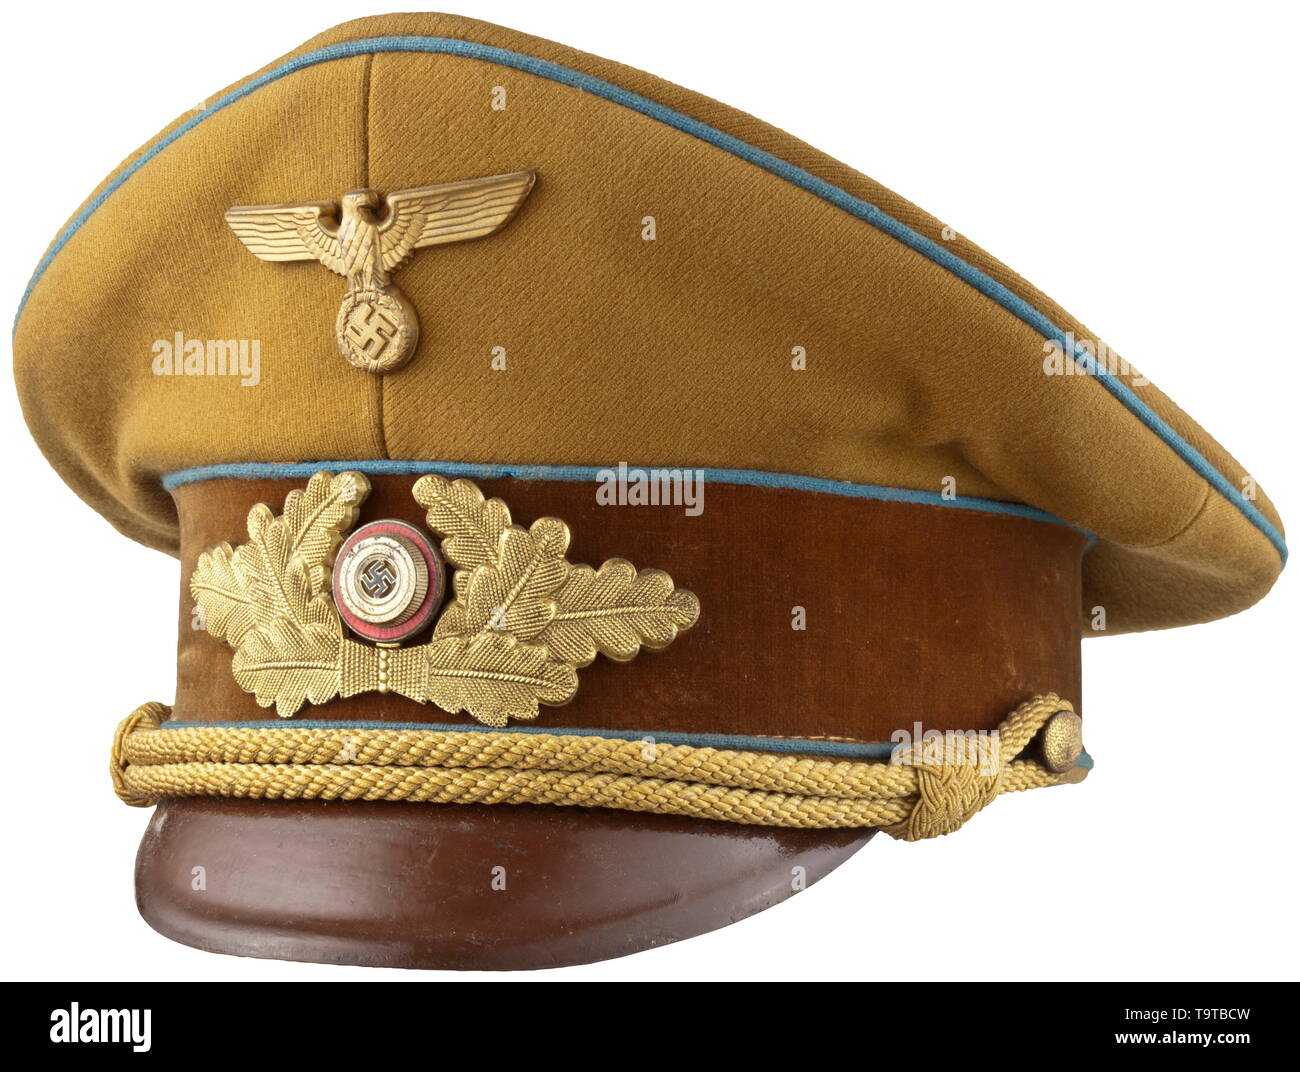 A visor cap M 39 for political leaders in the NSDAP district leadership depot piece with RZM tag historic, historical, 20th century, Editorial-Use-Only - Stock Image